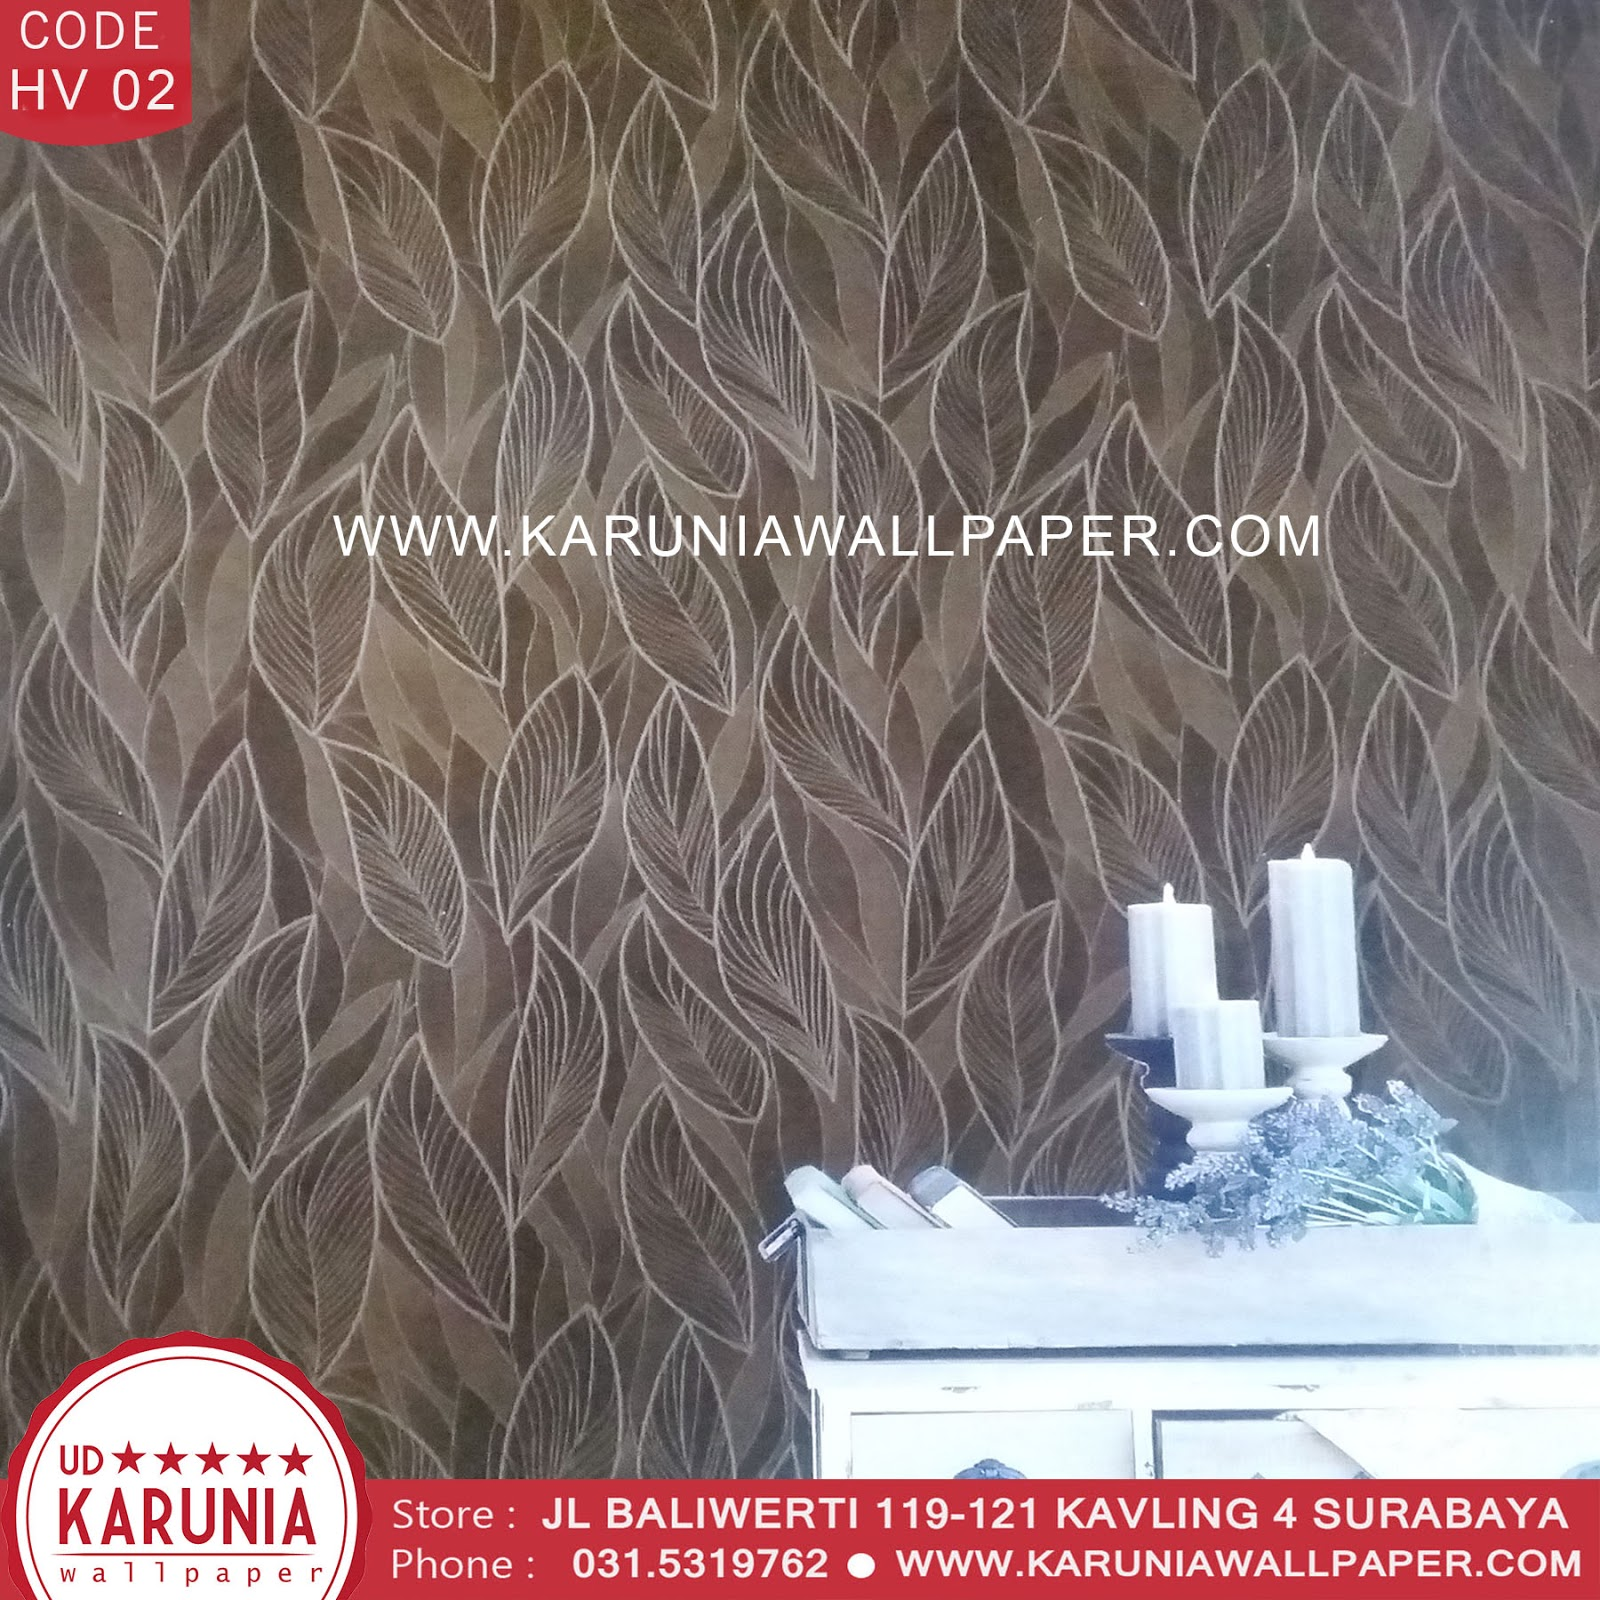 karuniawallpaper jual wallpaper